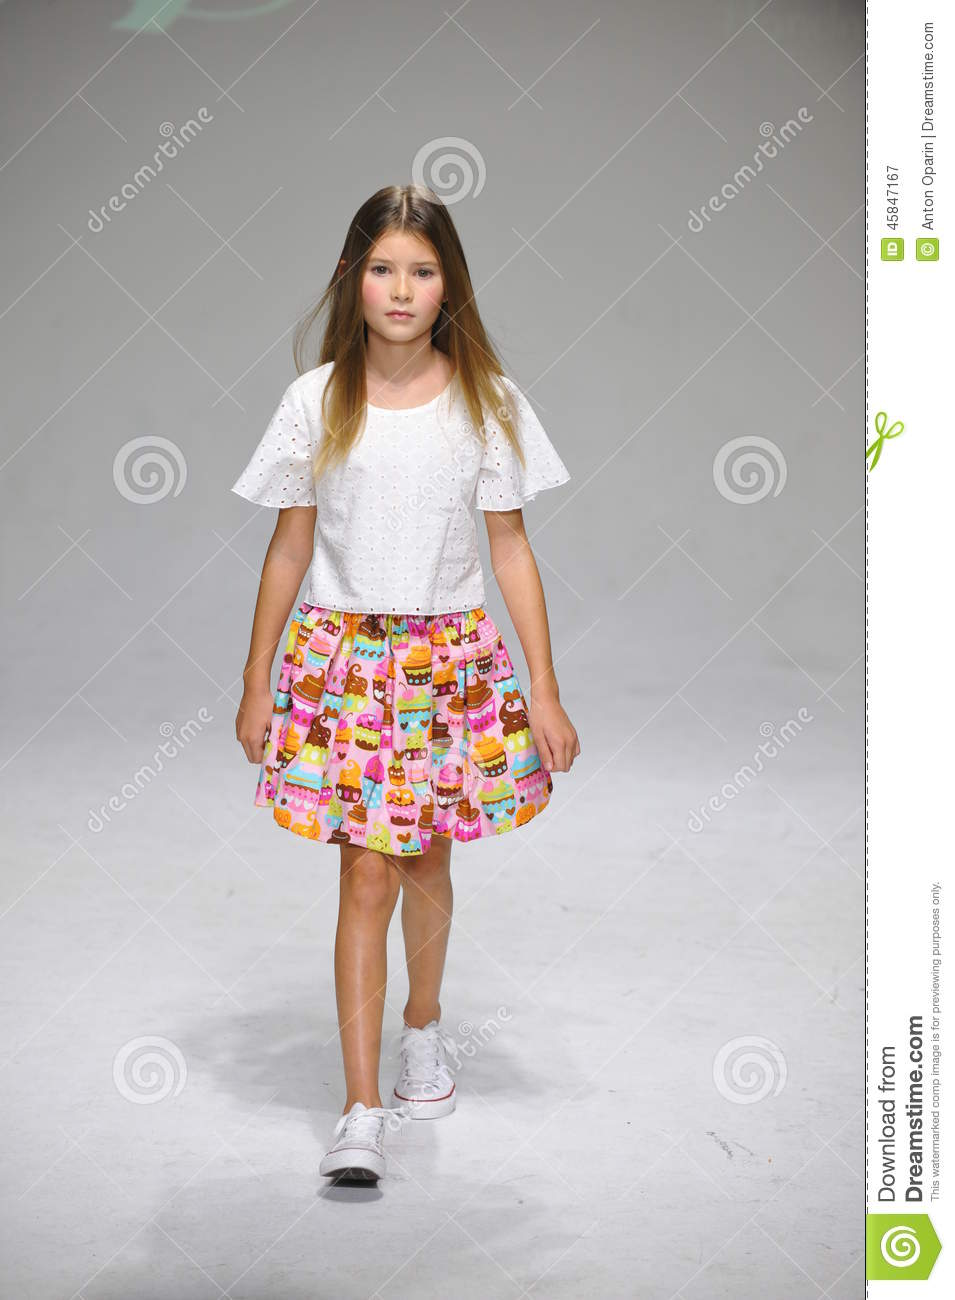 New York Kids Clothing & Accessories - CafePress.